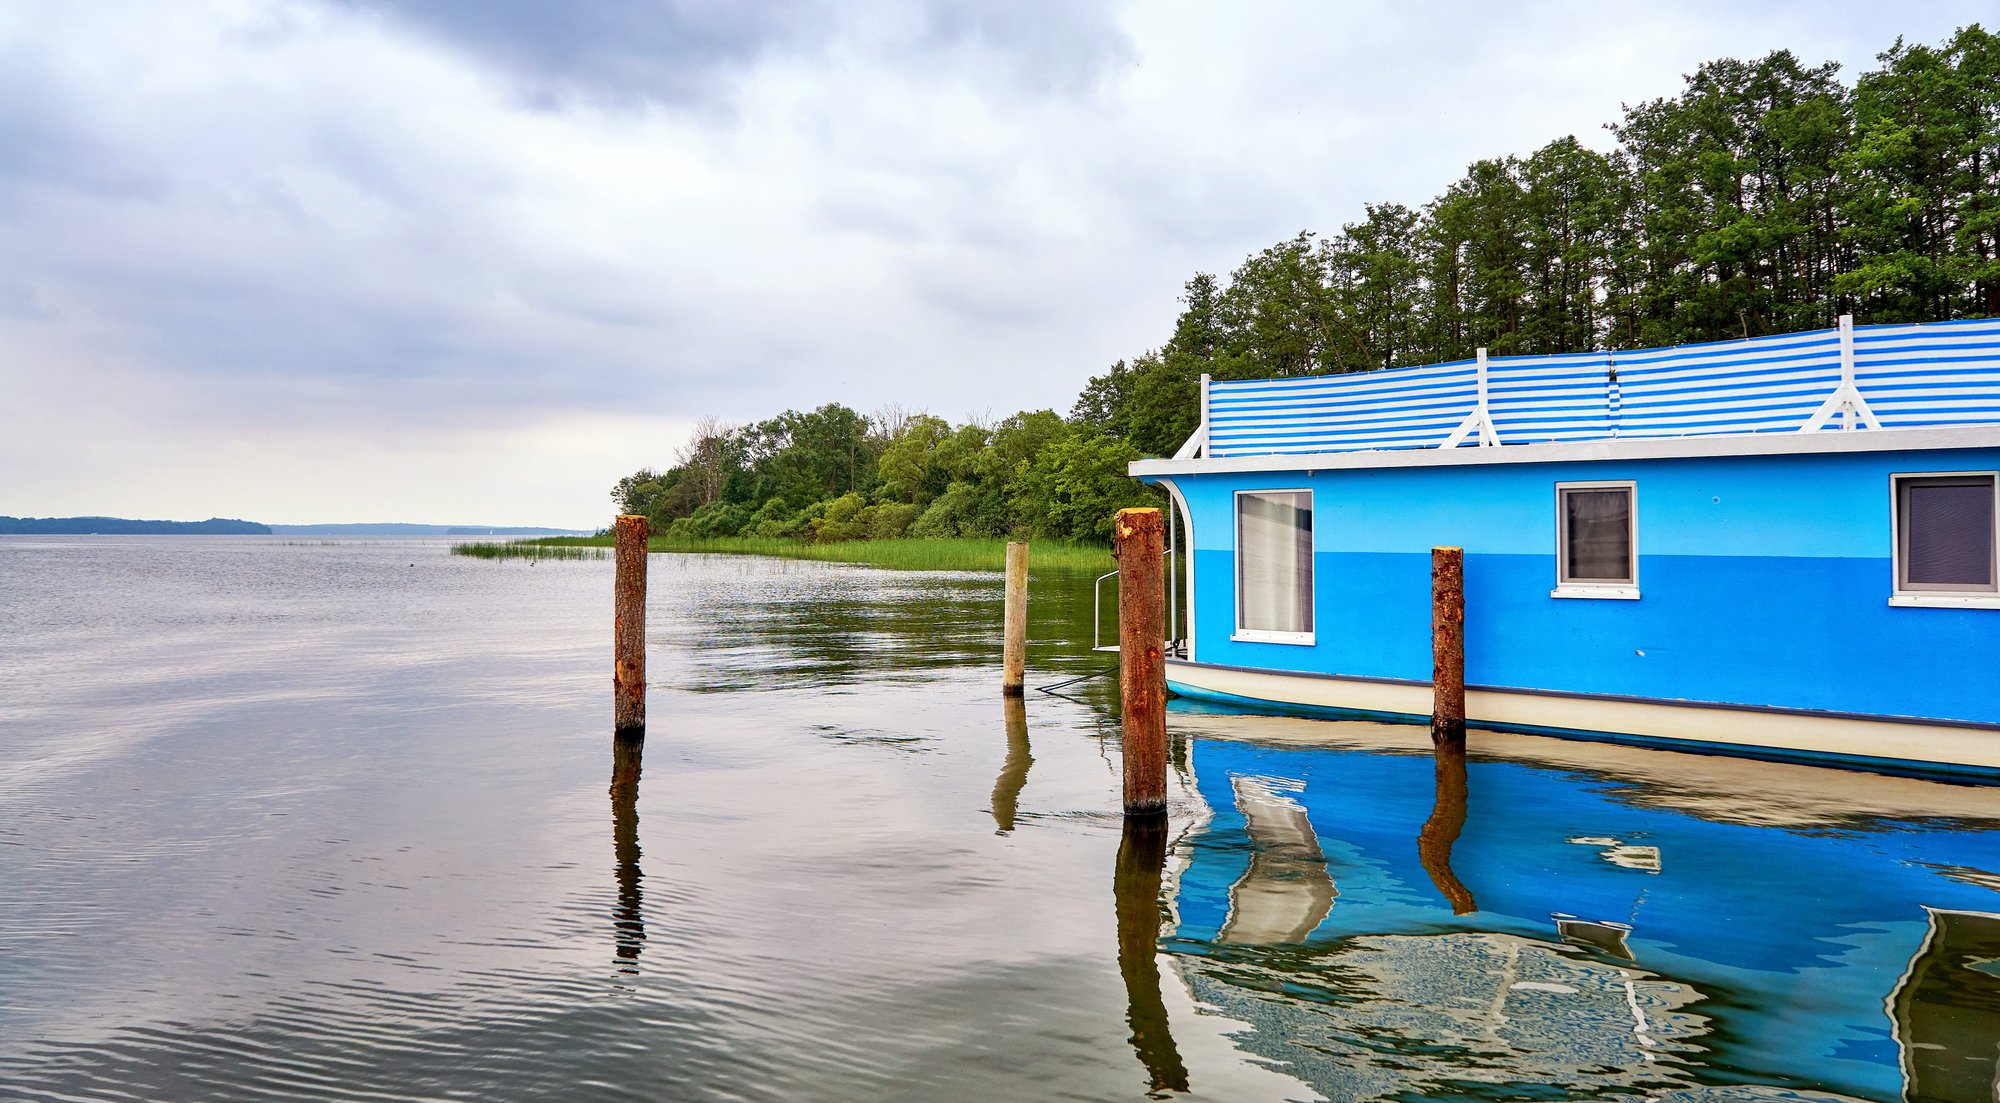 15 Questions You Should Ask Before Buying a Houseboat